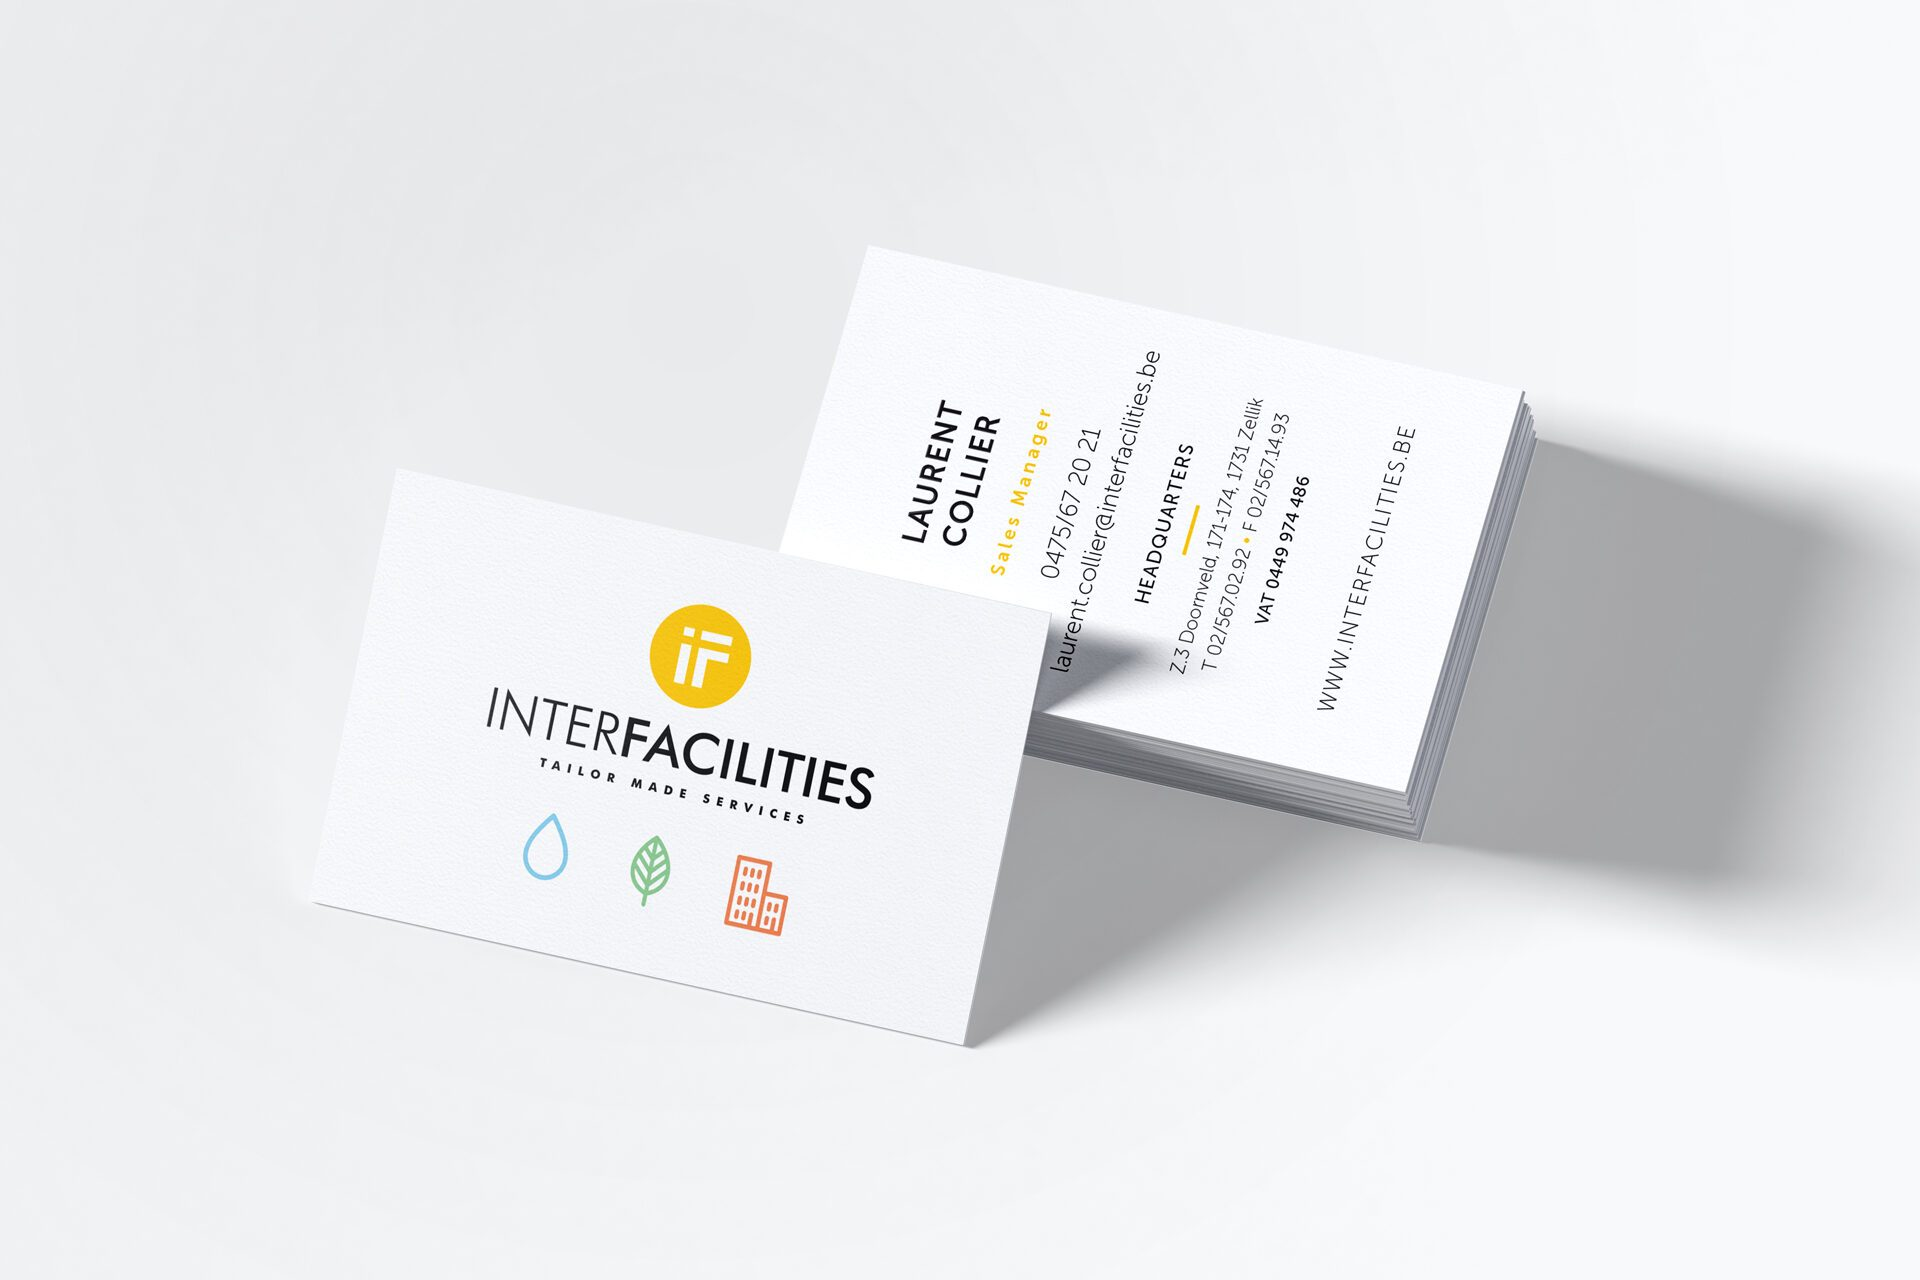 Picture Interfacilities Brand Identity